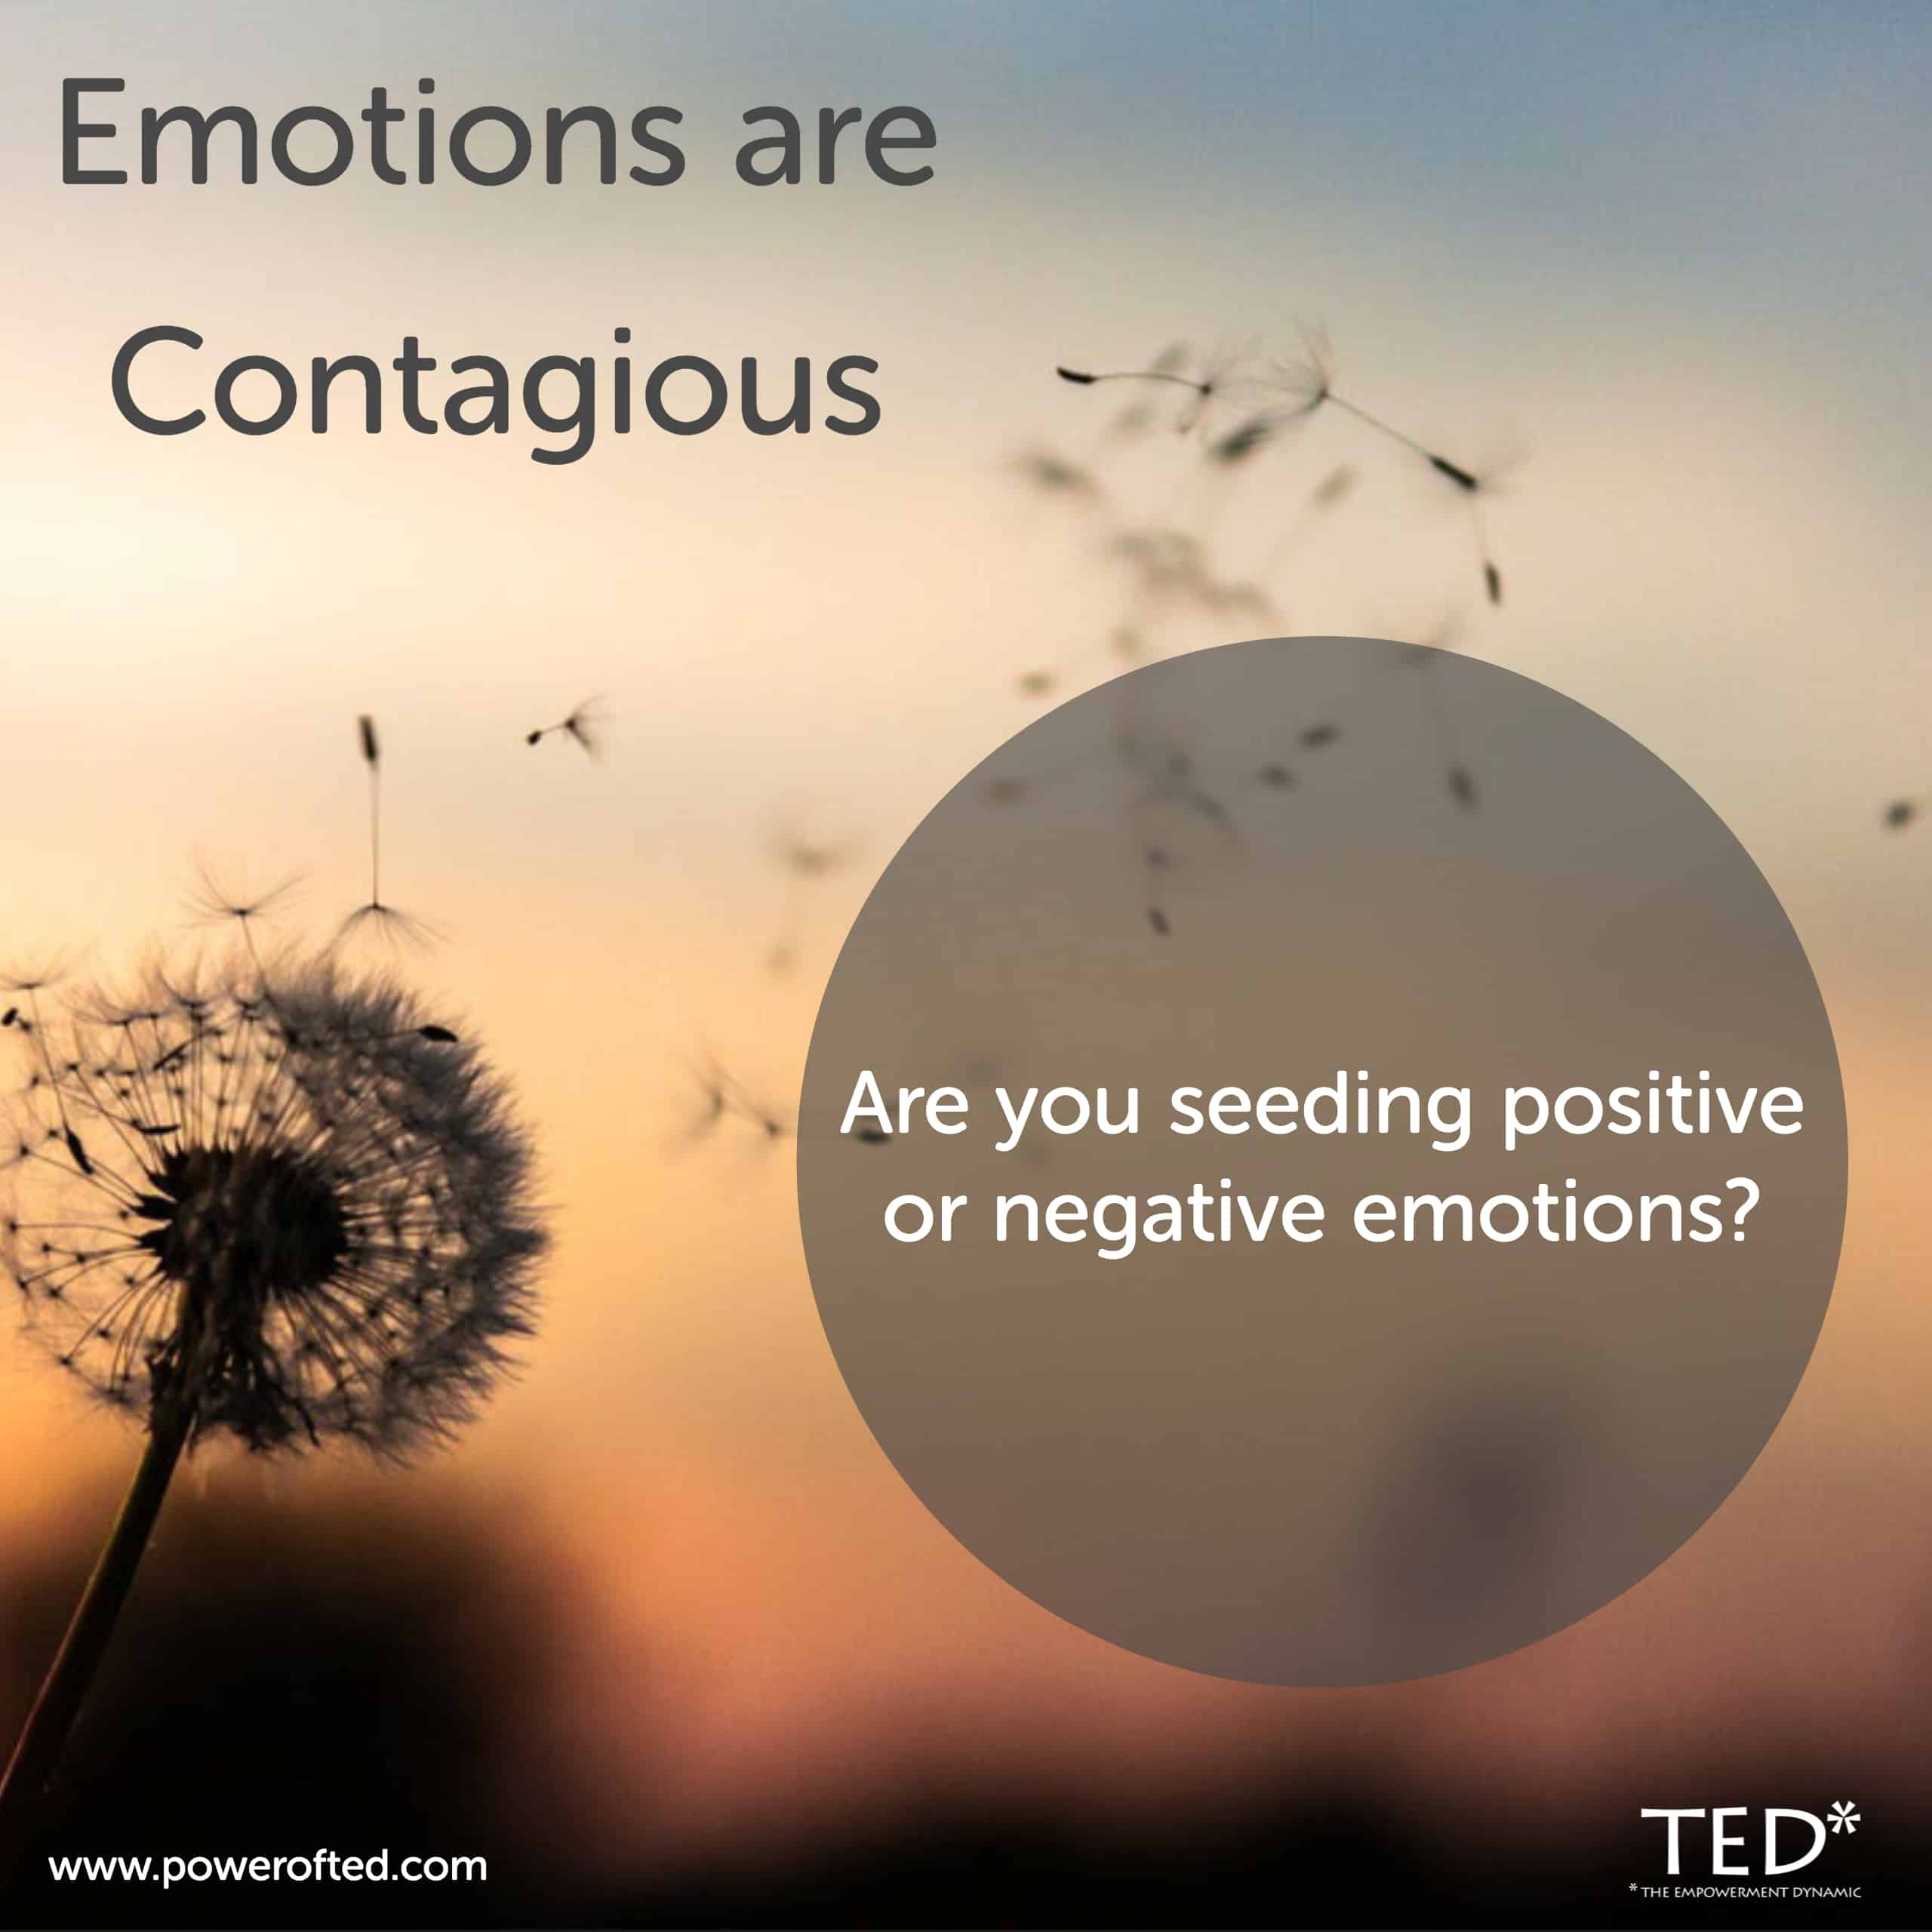 Emotions are contagious. Are you seeding positive or negative emotions?